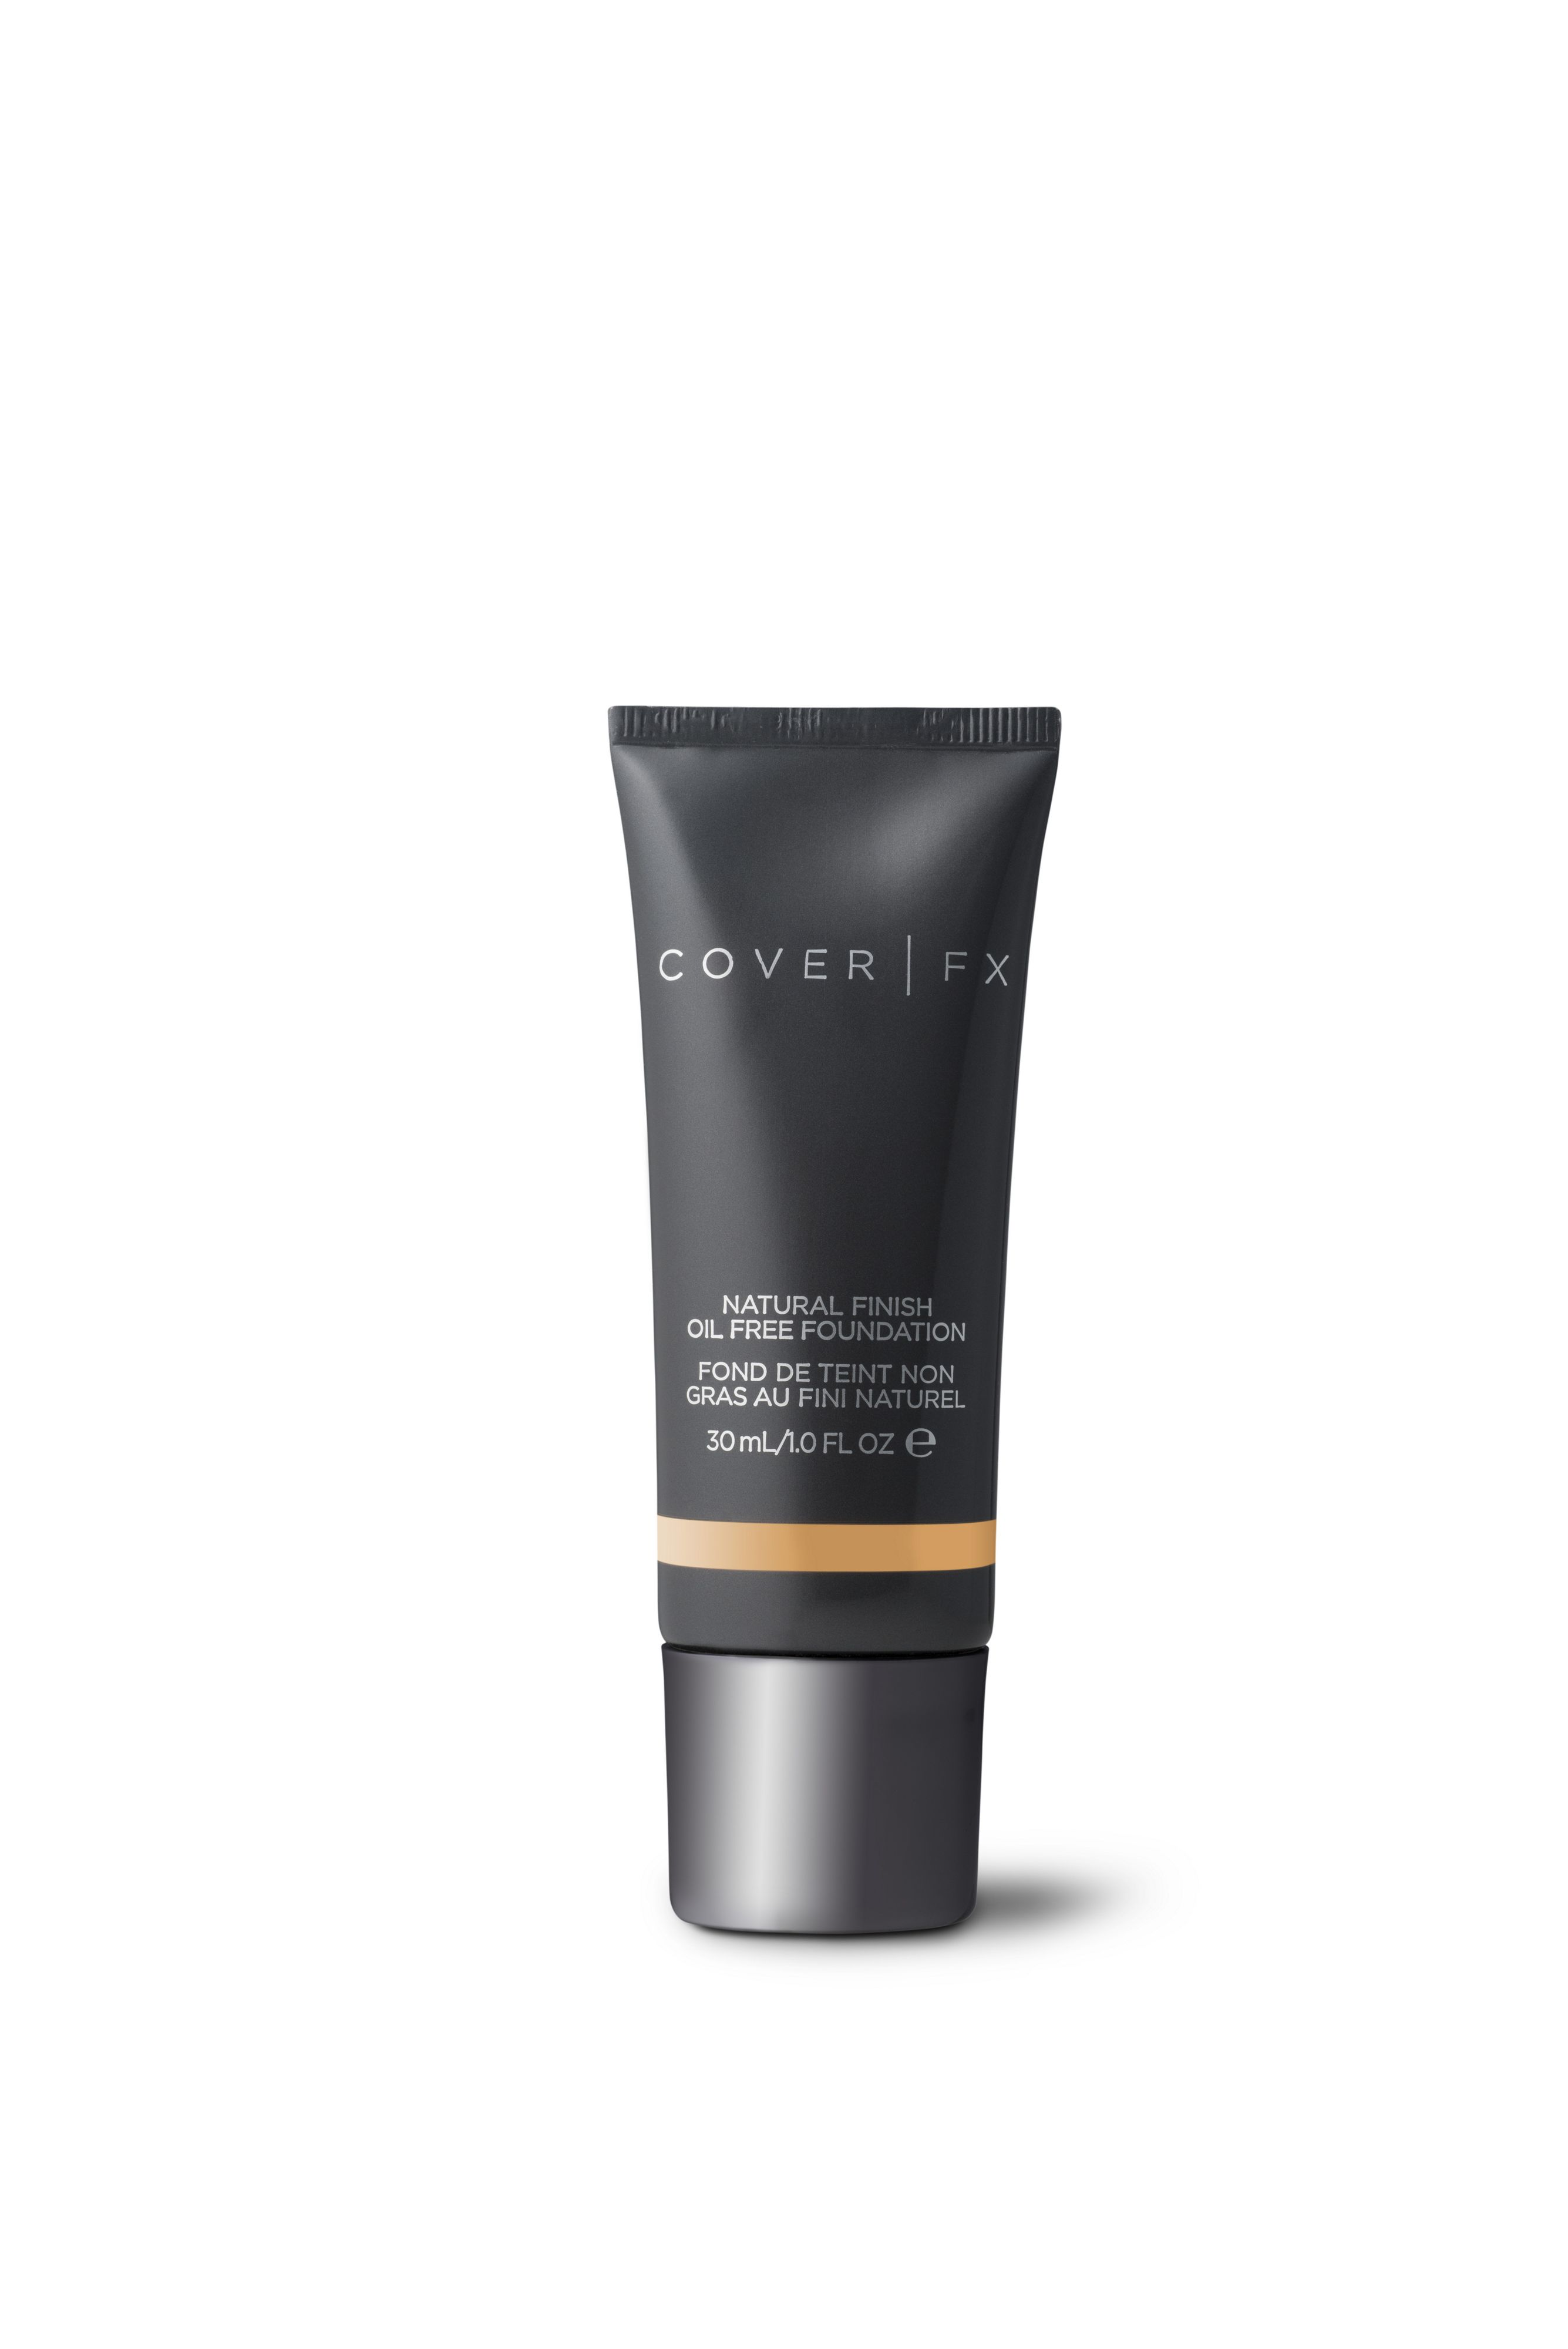 Cover FX Cover FX Natural Finish Oil-Free Foundation 30ml, G150